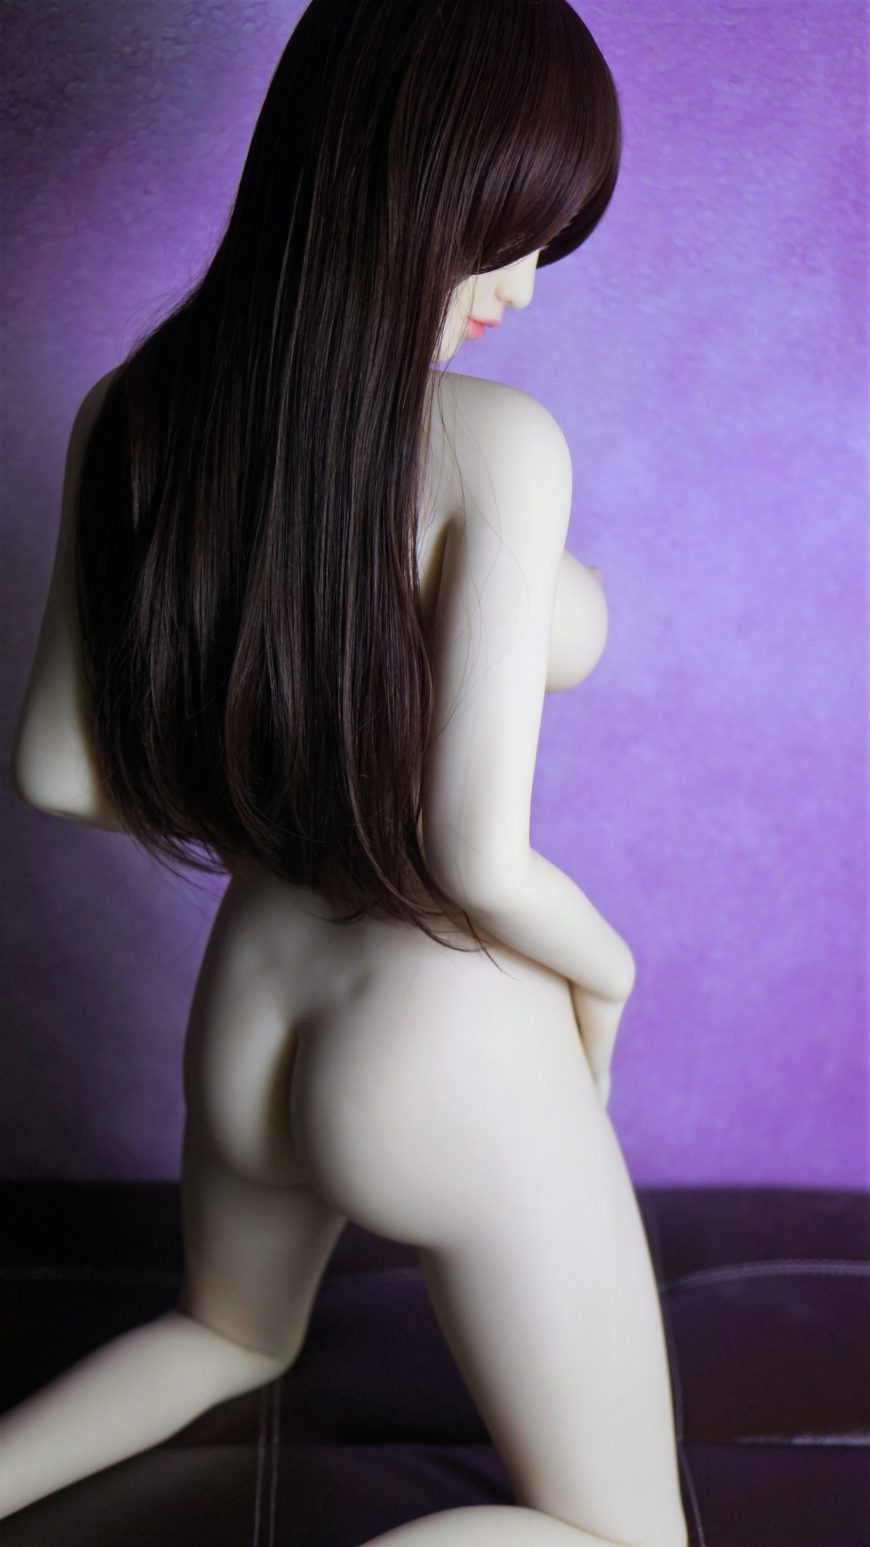 Sex-Doll-Posing-Nude-For-Dirty-Knights-sex-dolls-1 (16)